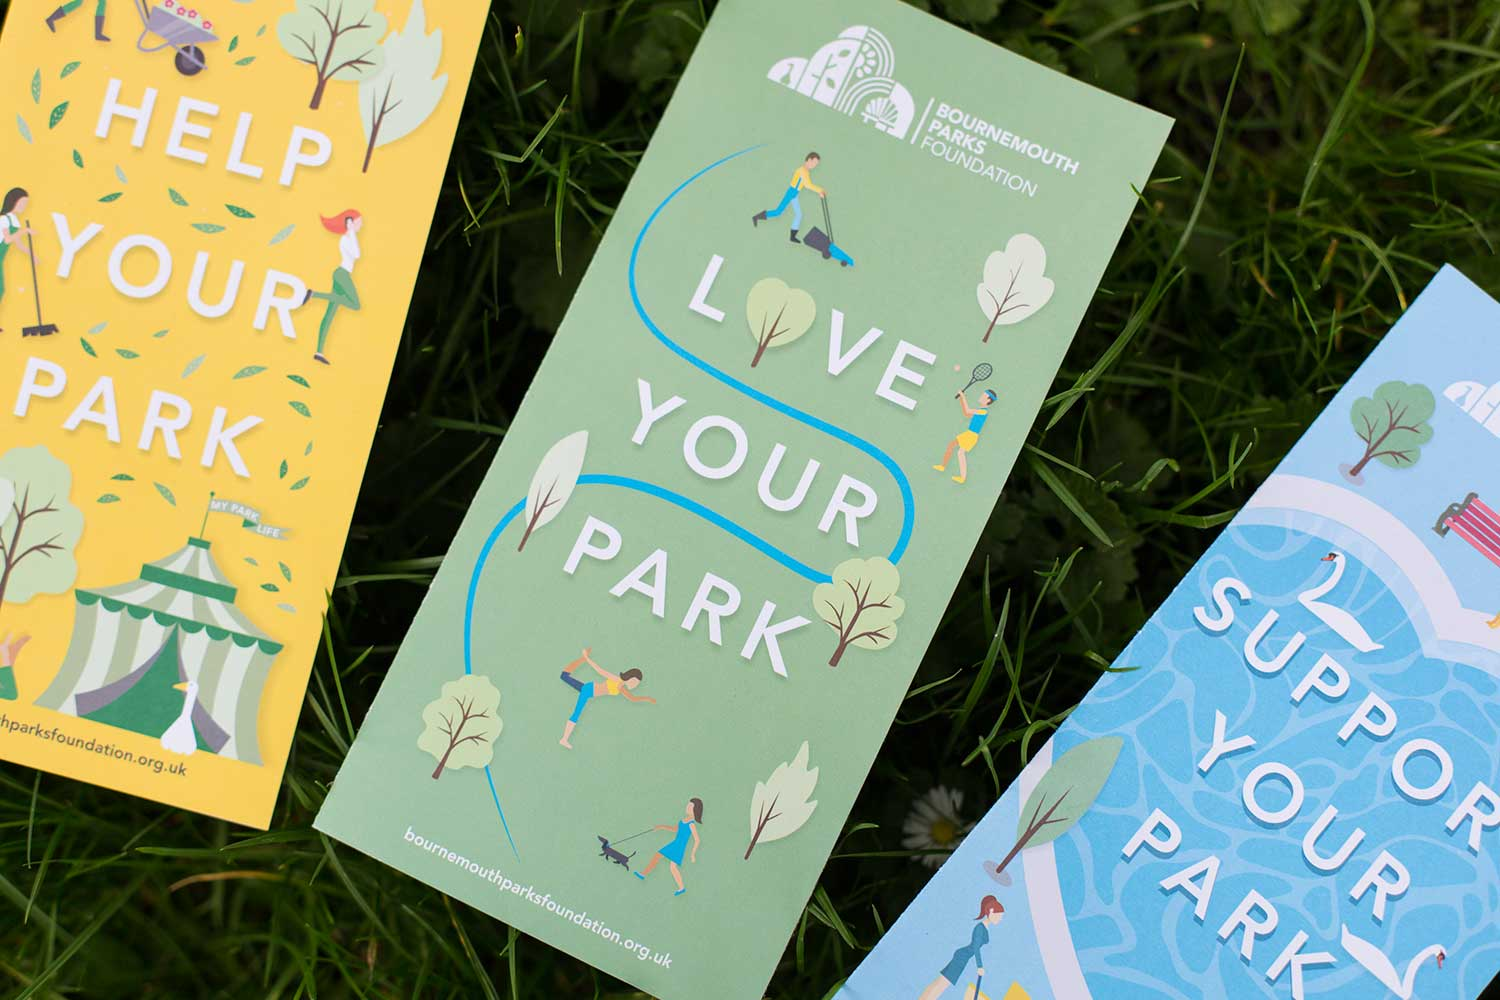 Bournemouth Parks Foundation creative design and print